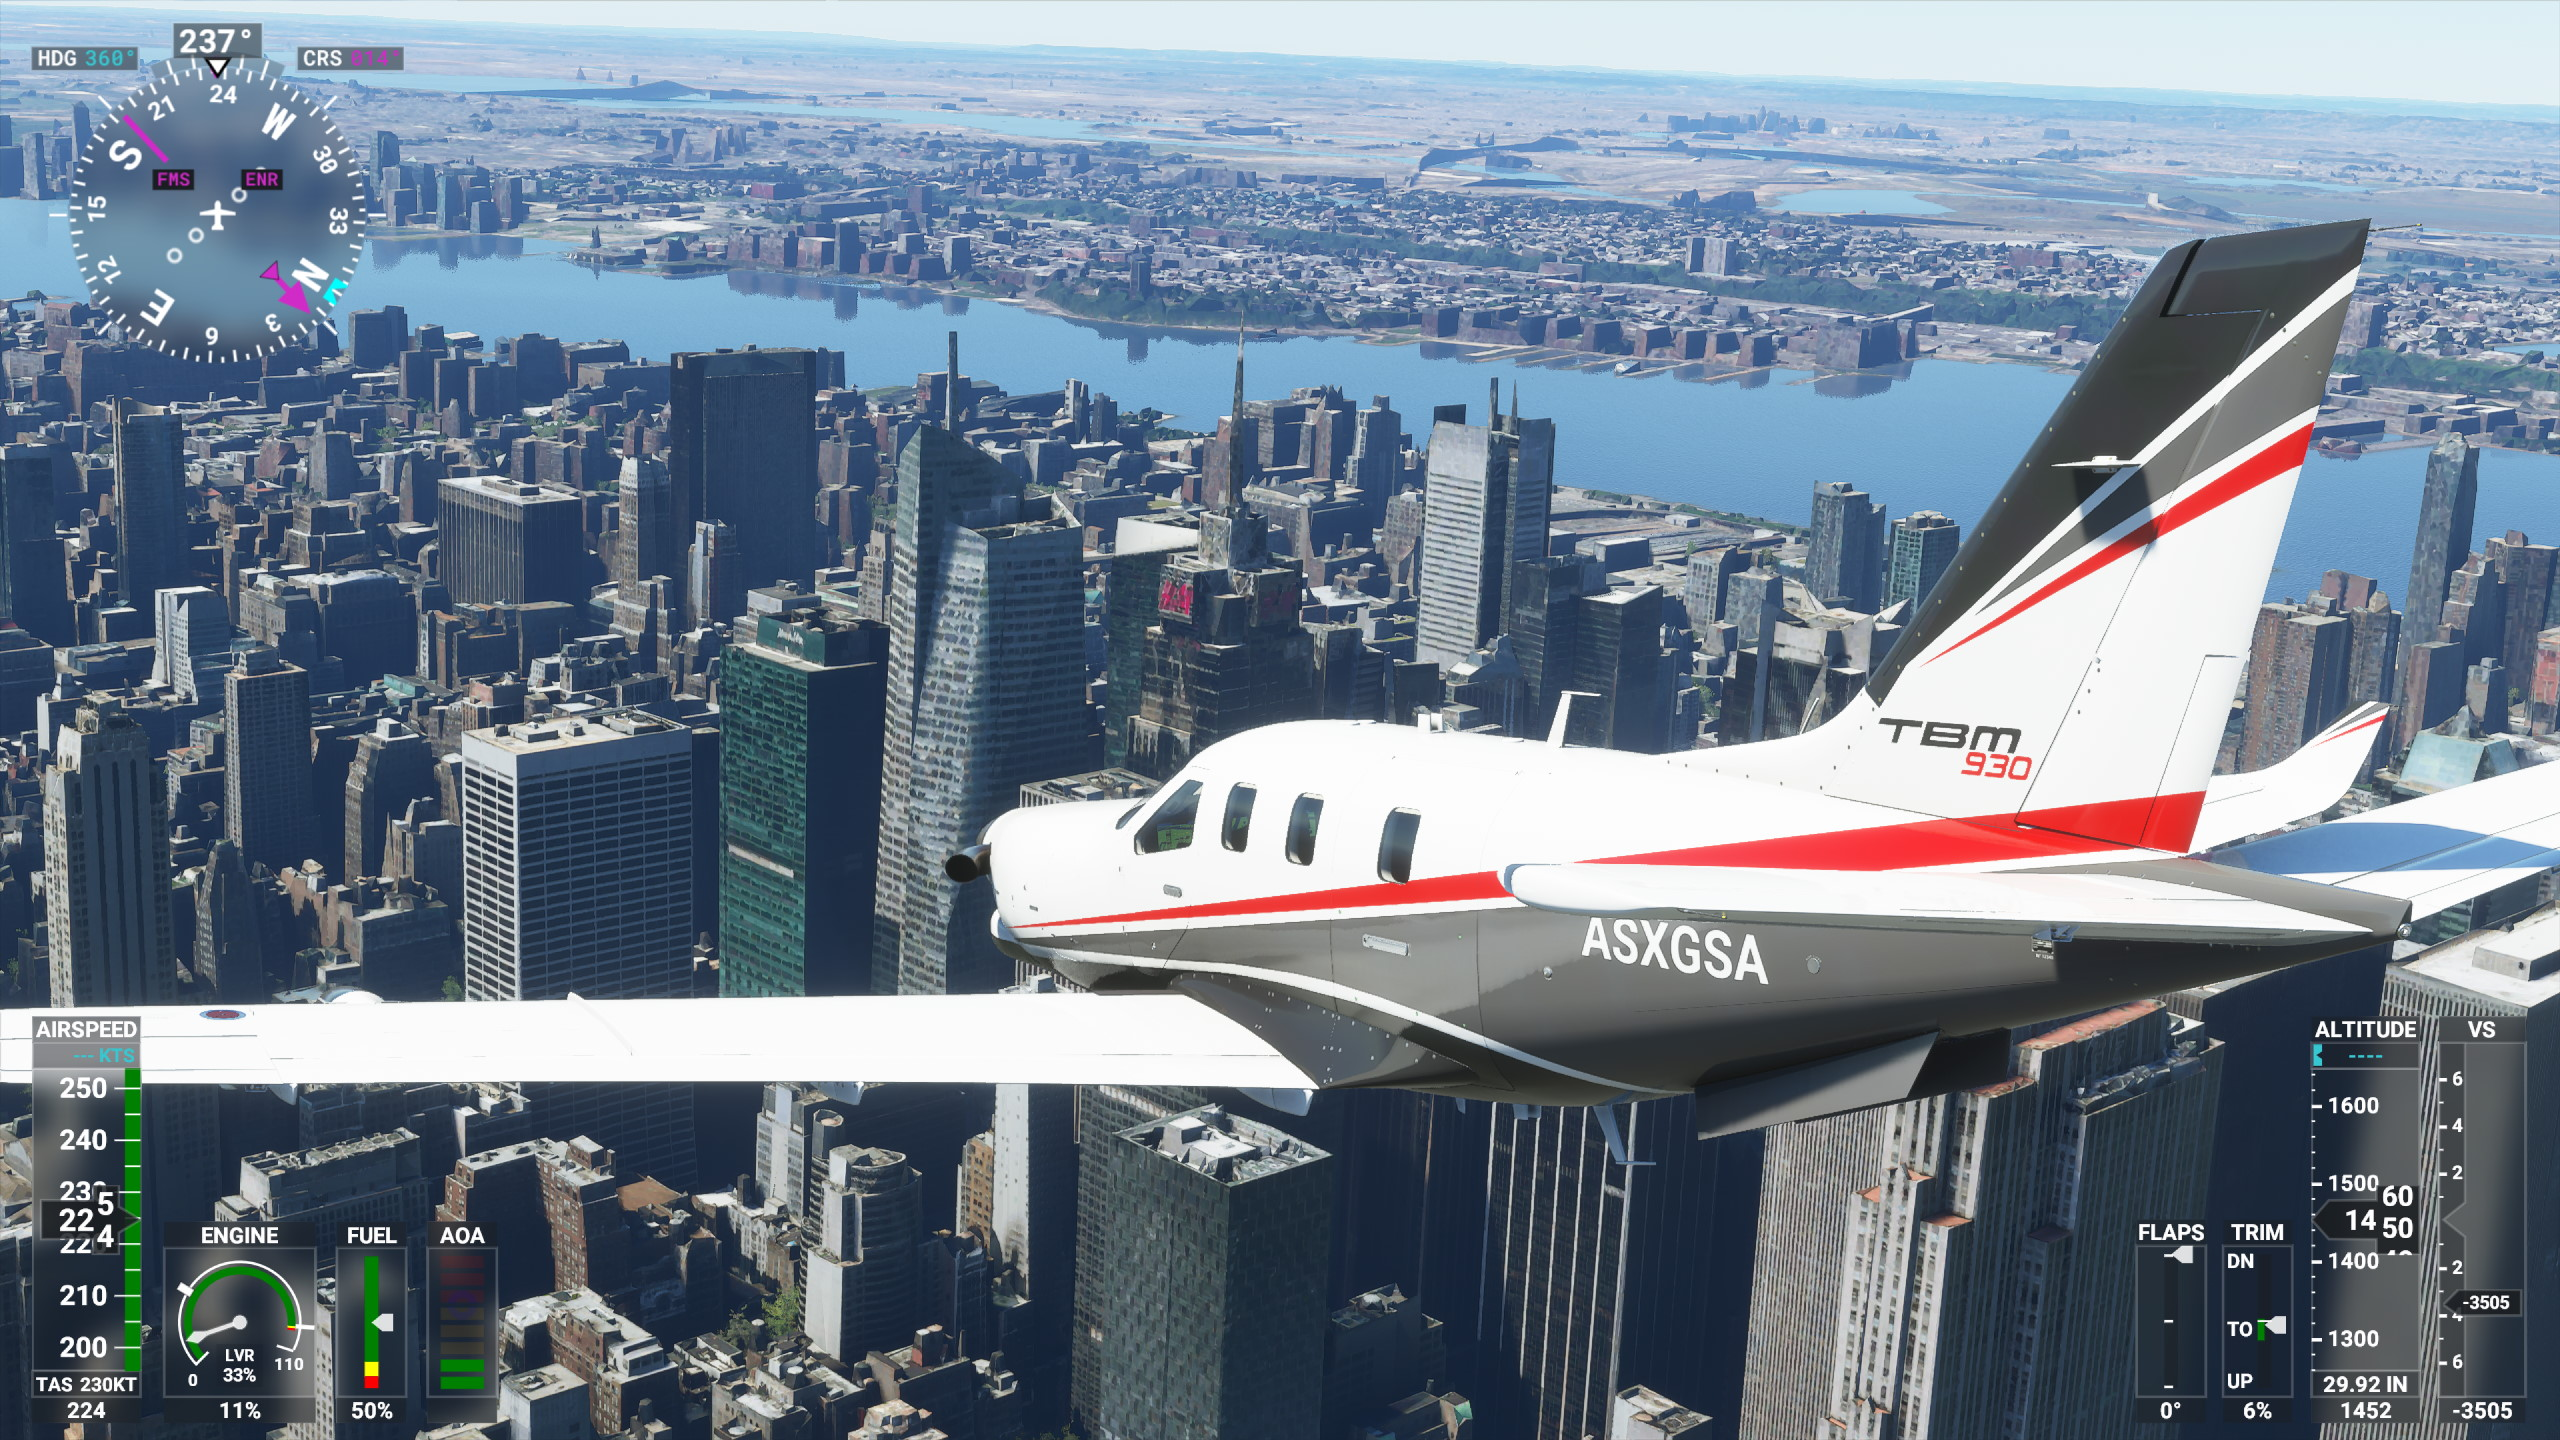 A screenshot of New York City in Microsoft Flight Simulator 2020 on its Ultra graphics setting